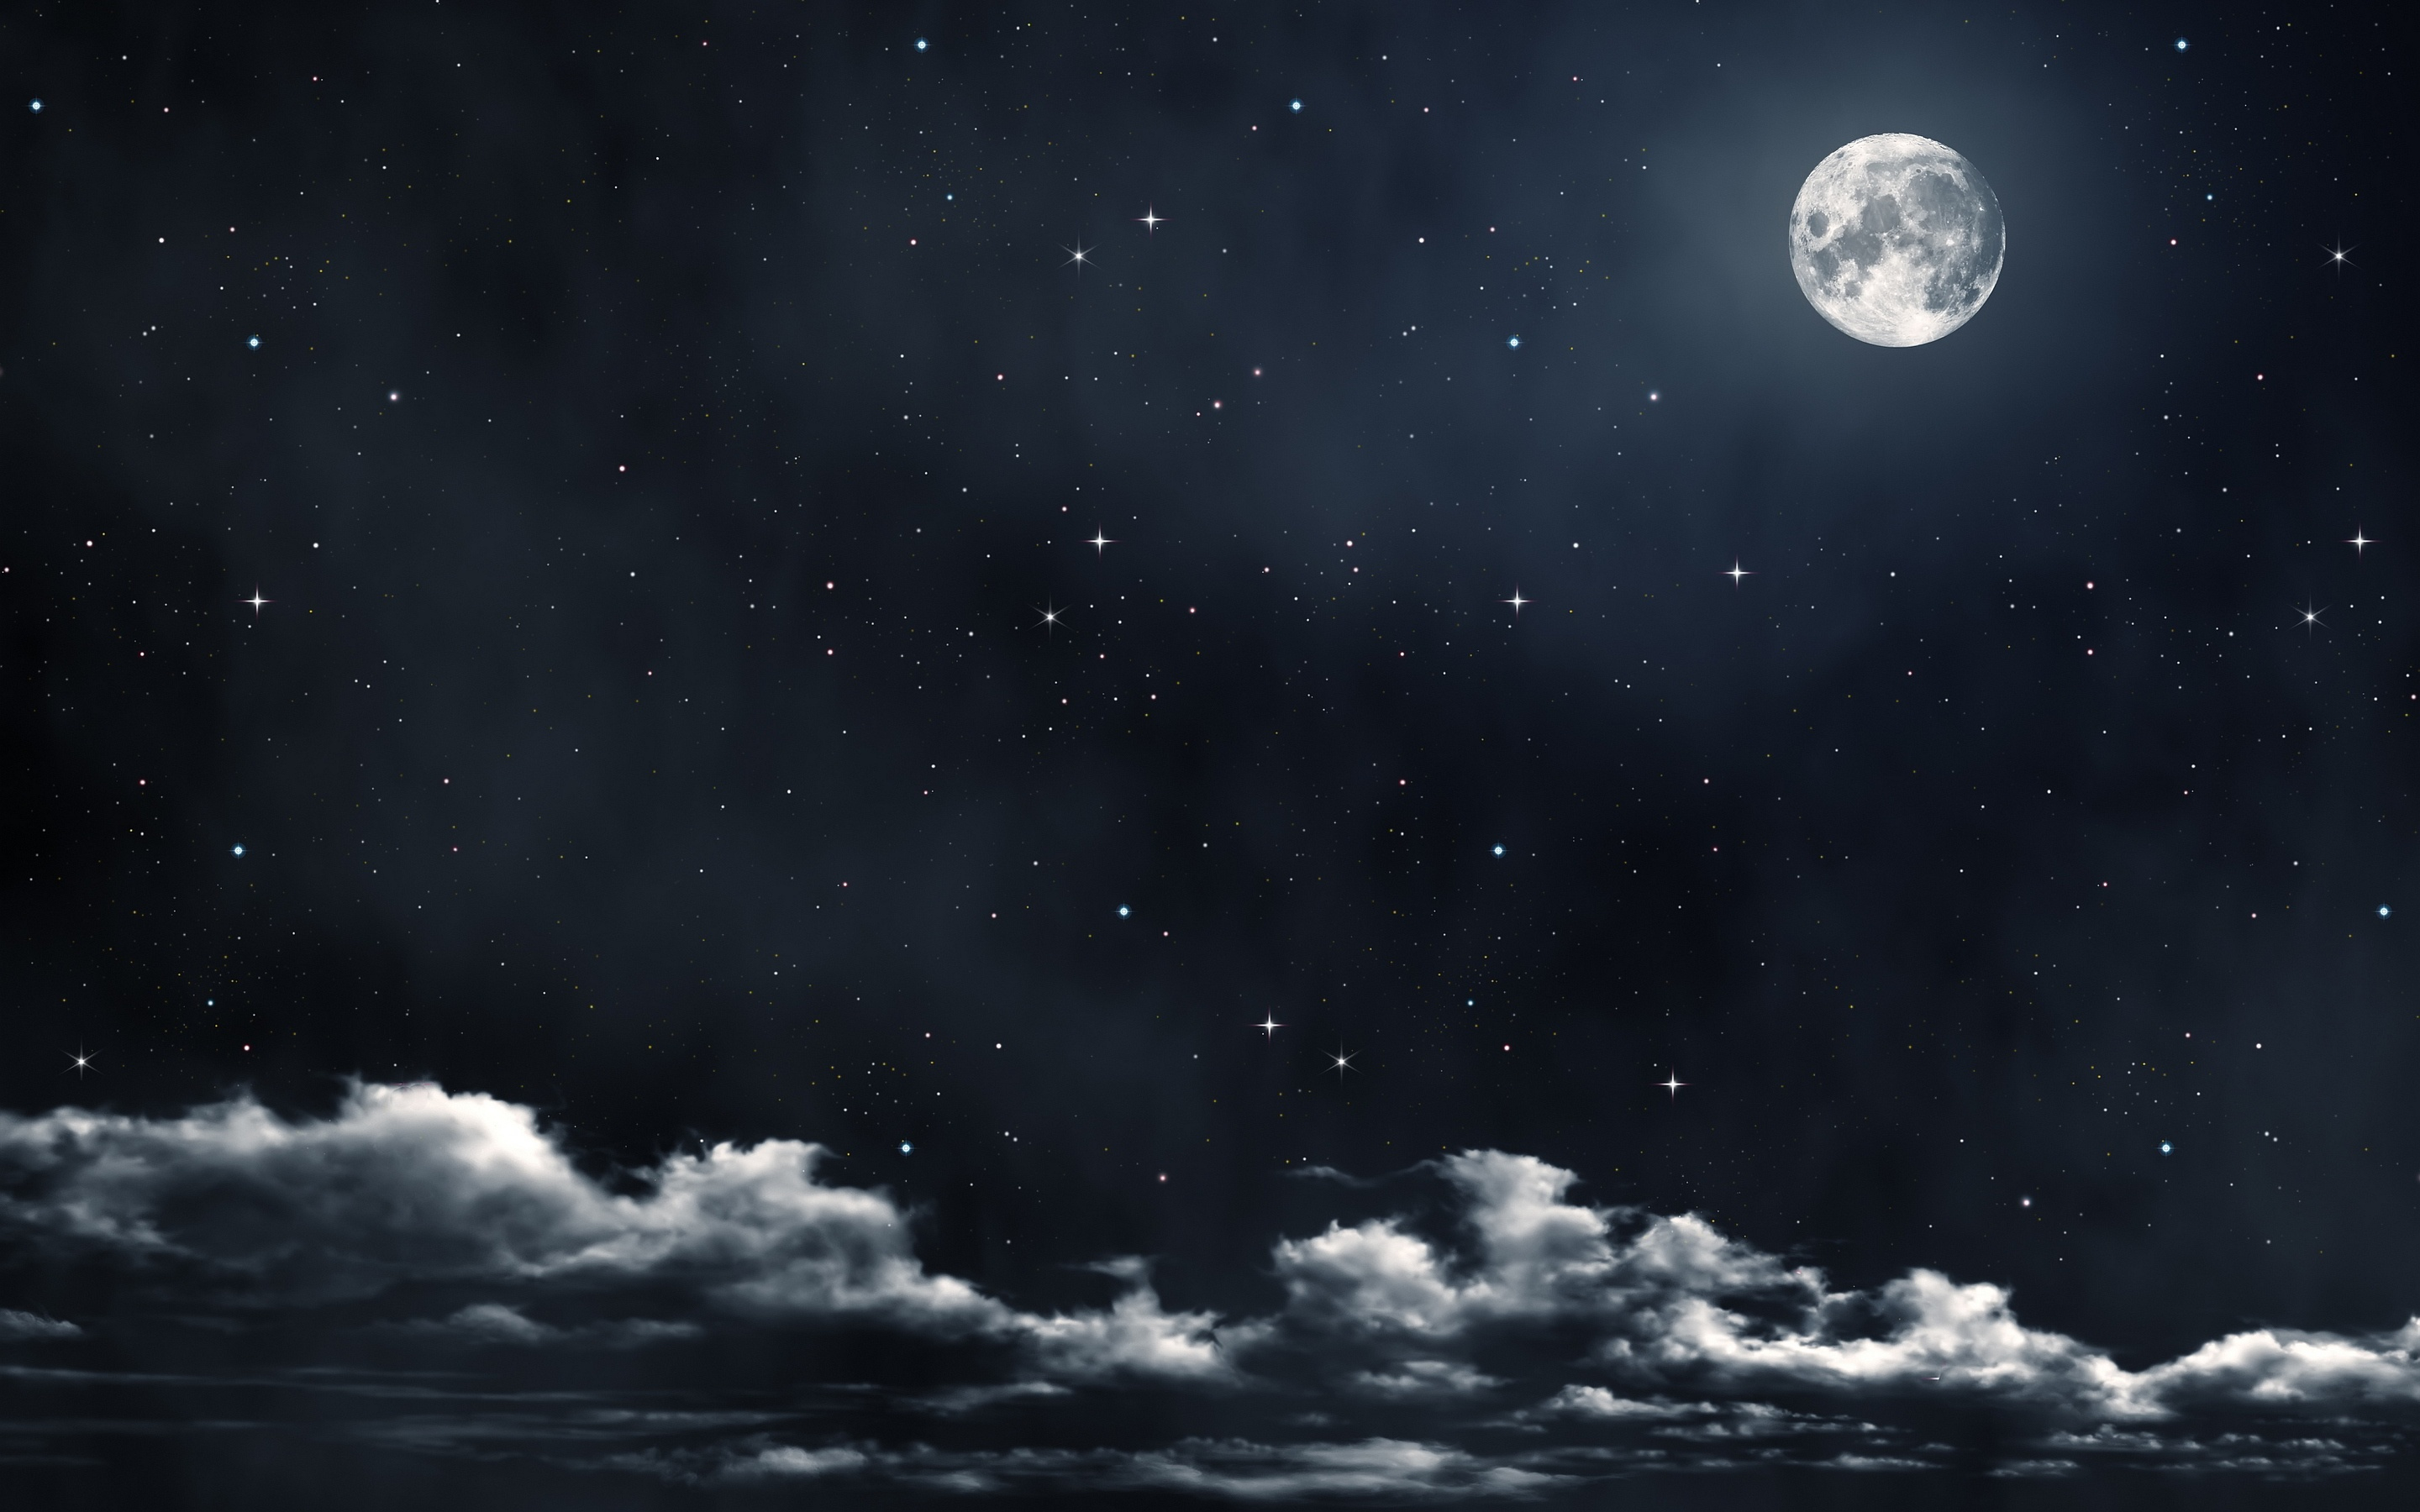 moon-stars-clouds-2880x1800